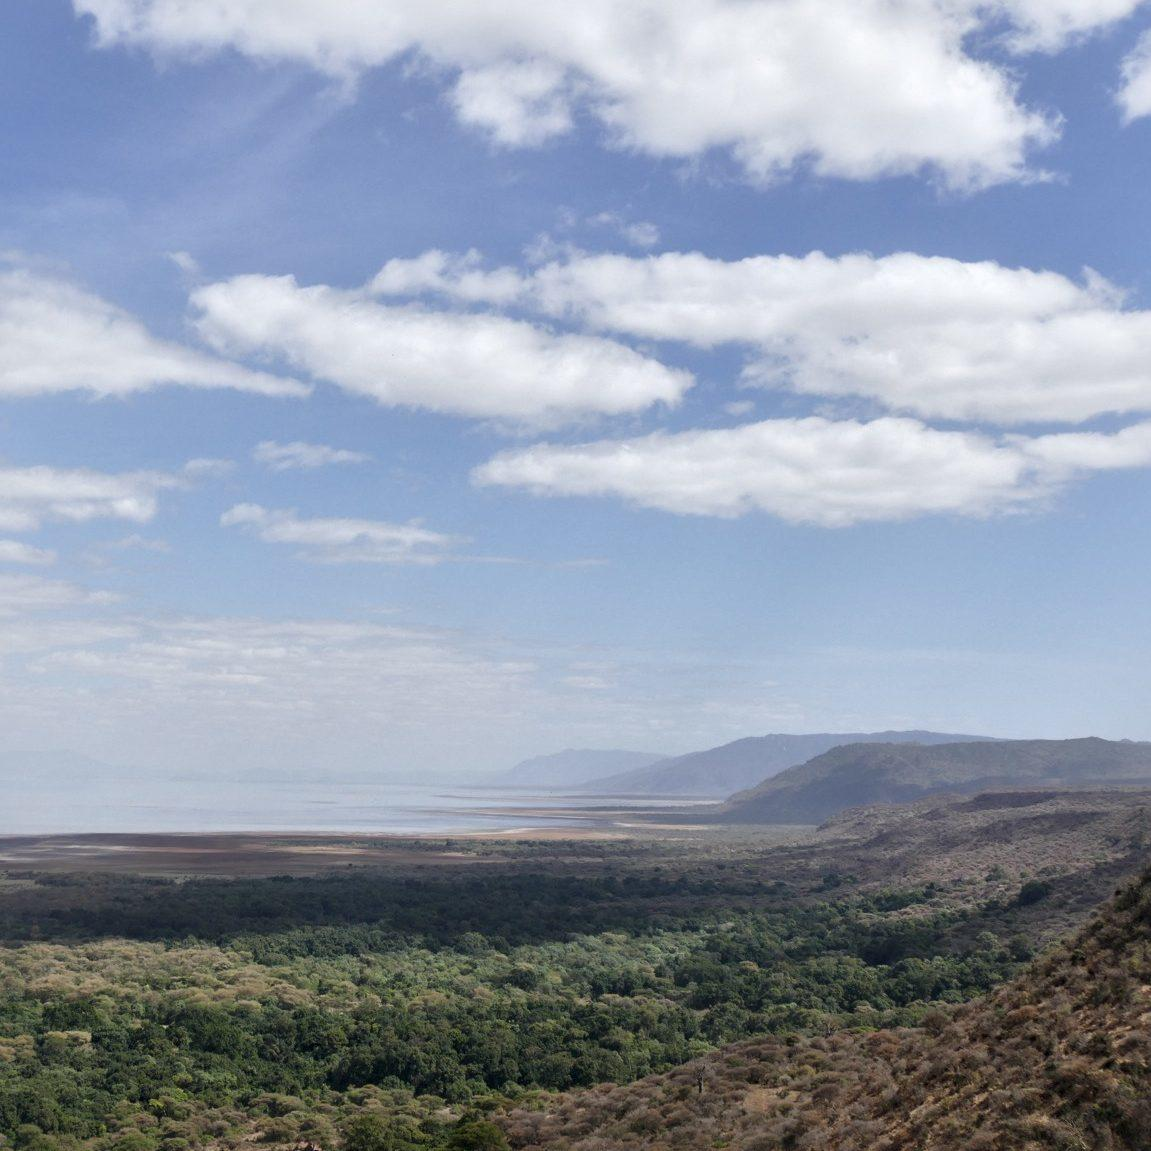 A view of Tanzania's Rift Valley en route to Arusha.